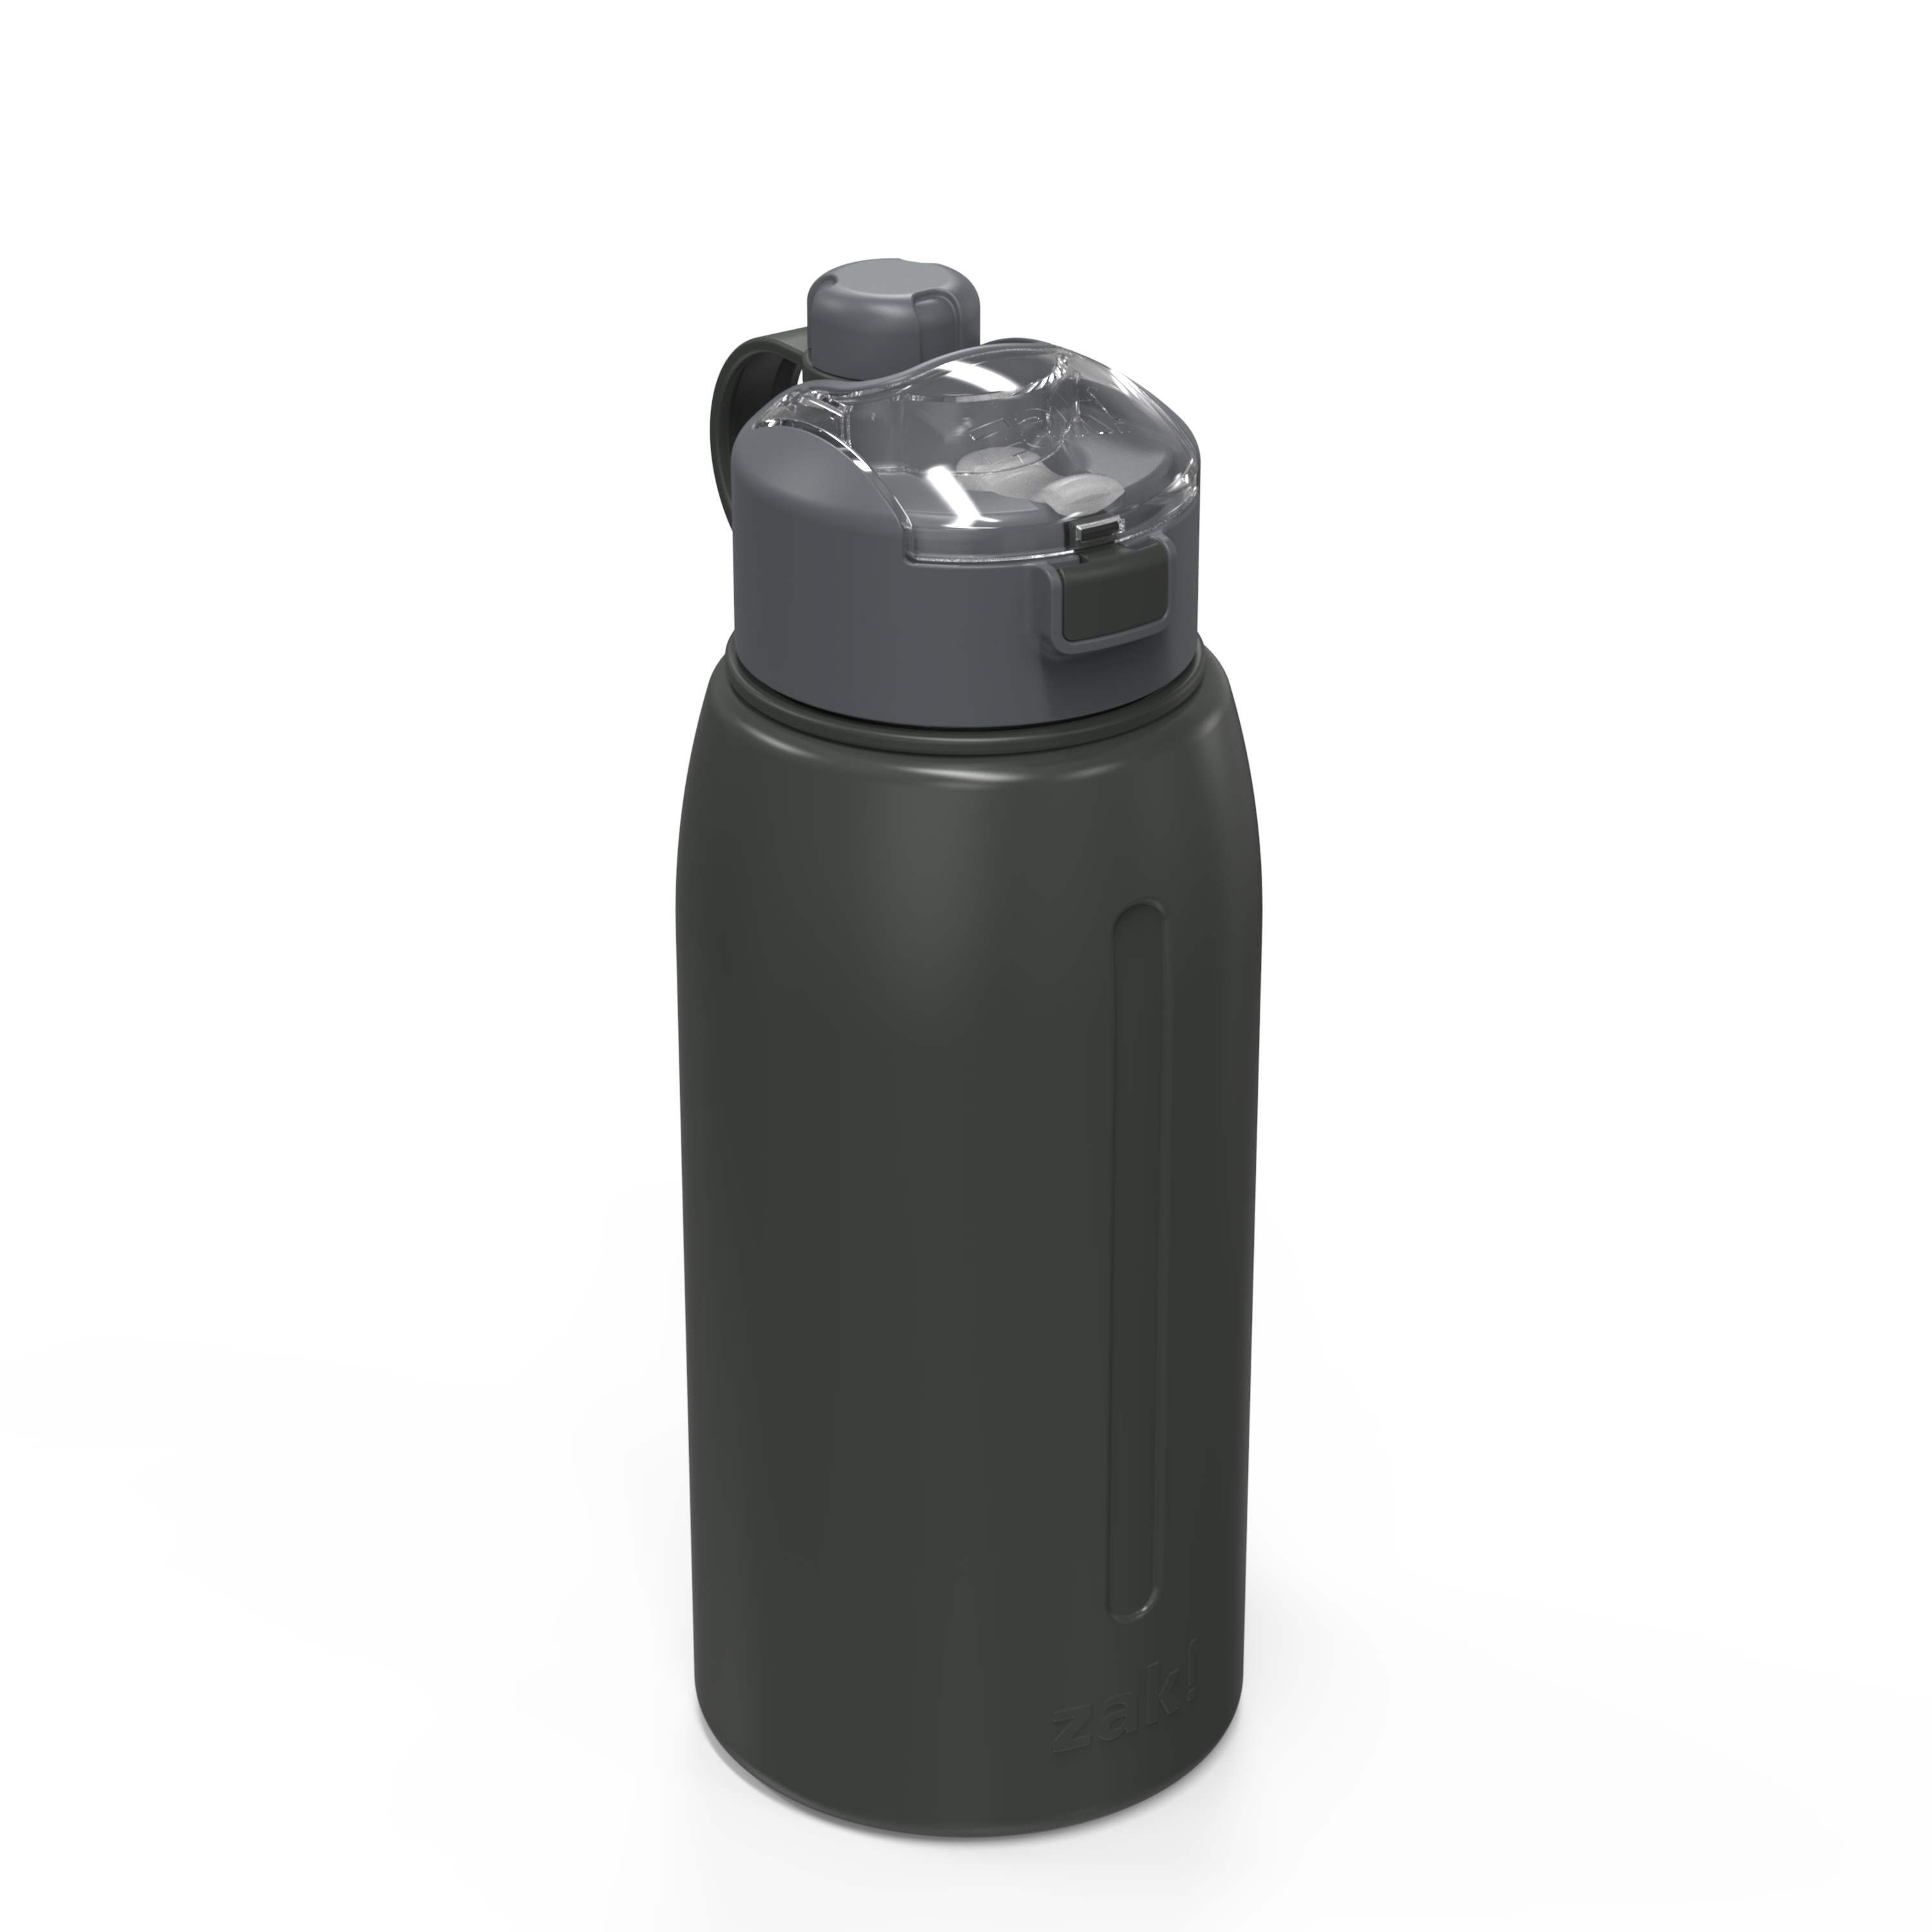 Genesis 32 ounce Vacuum Insulated Stainless Steel Tumbler, Charcoal slideshow image 4